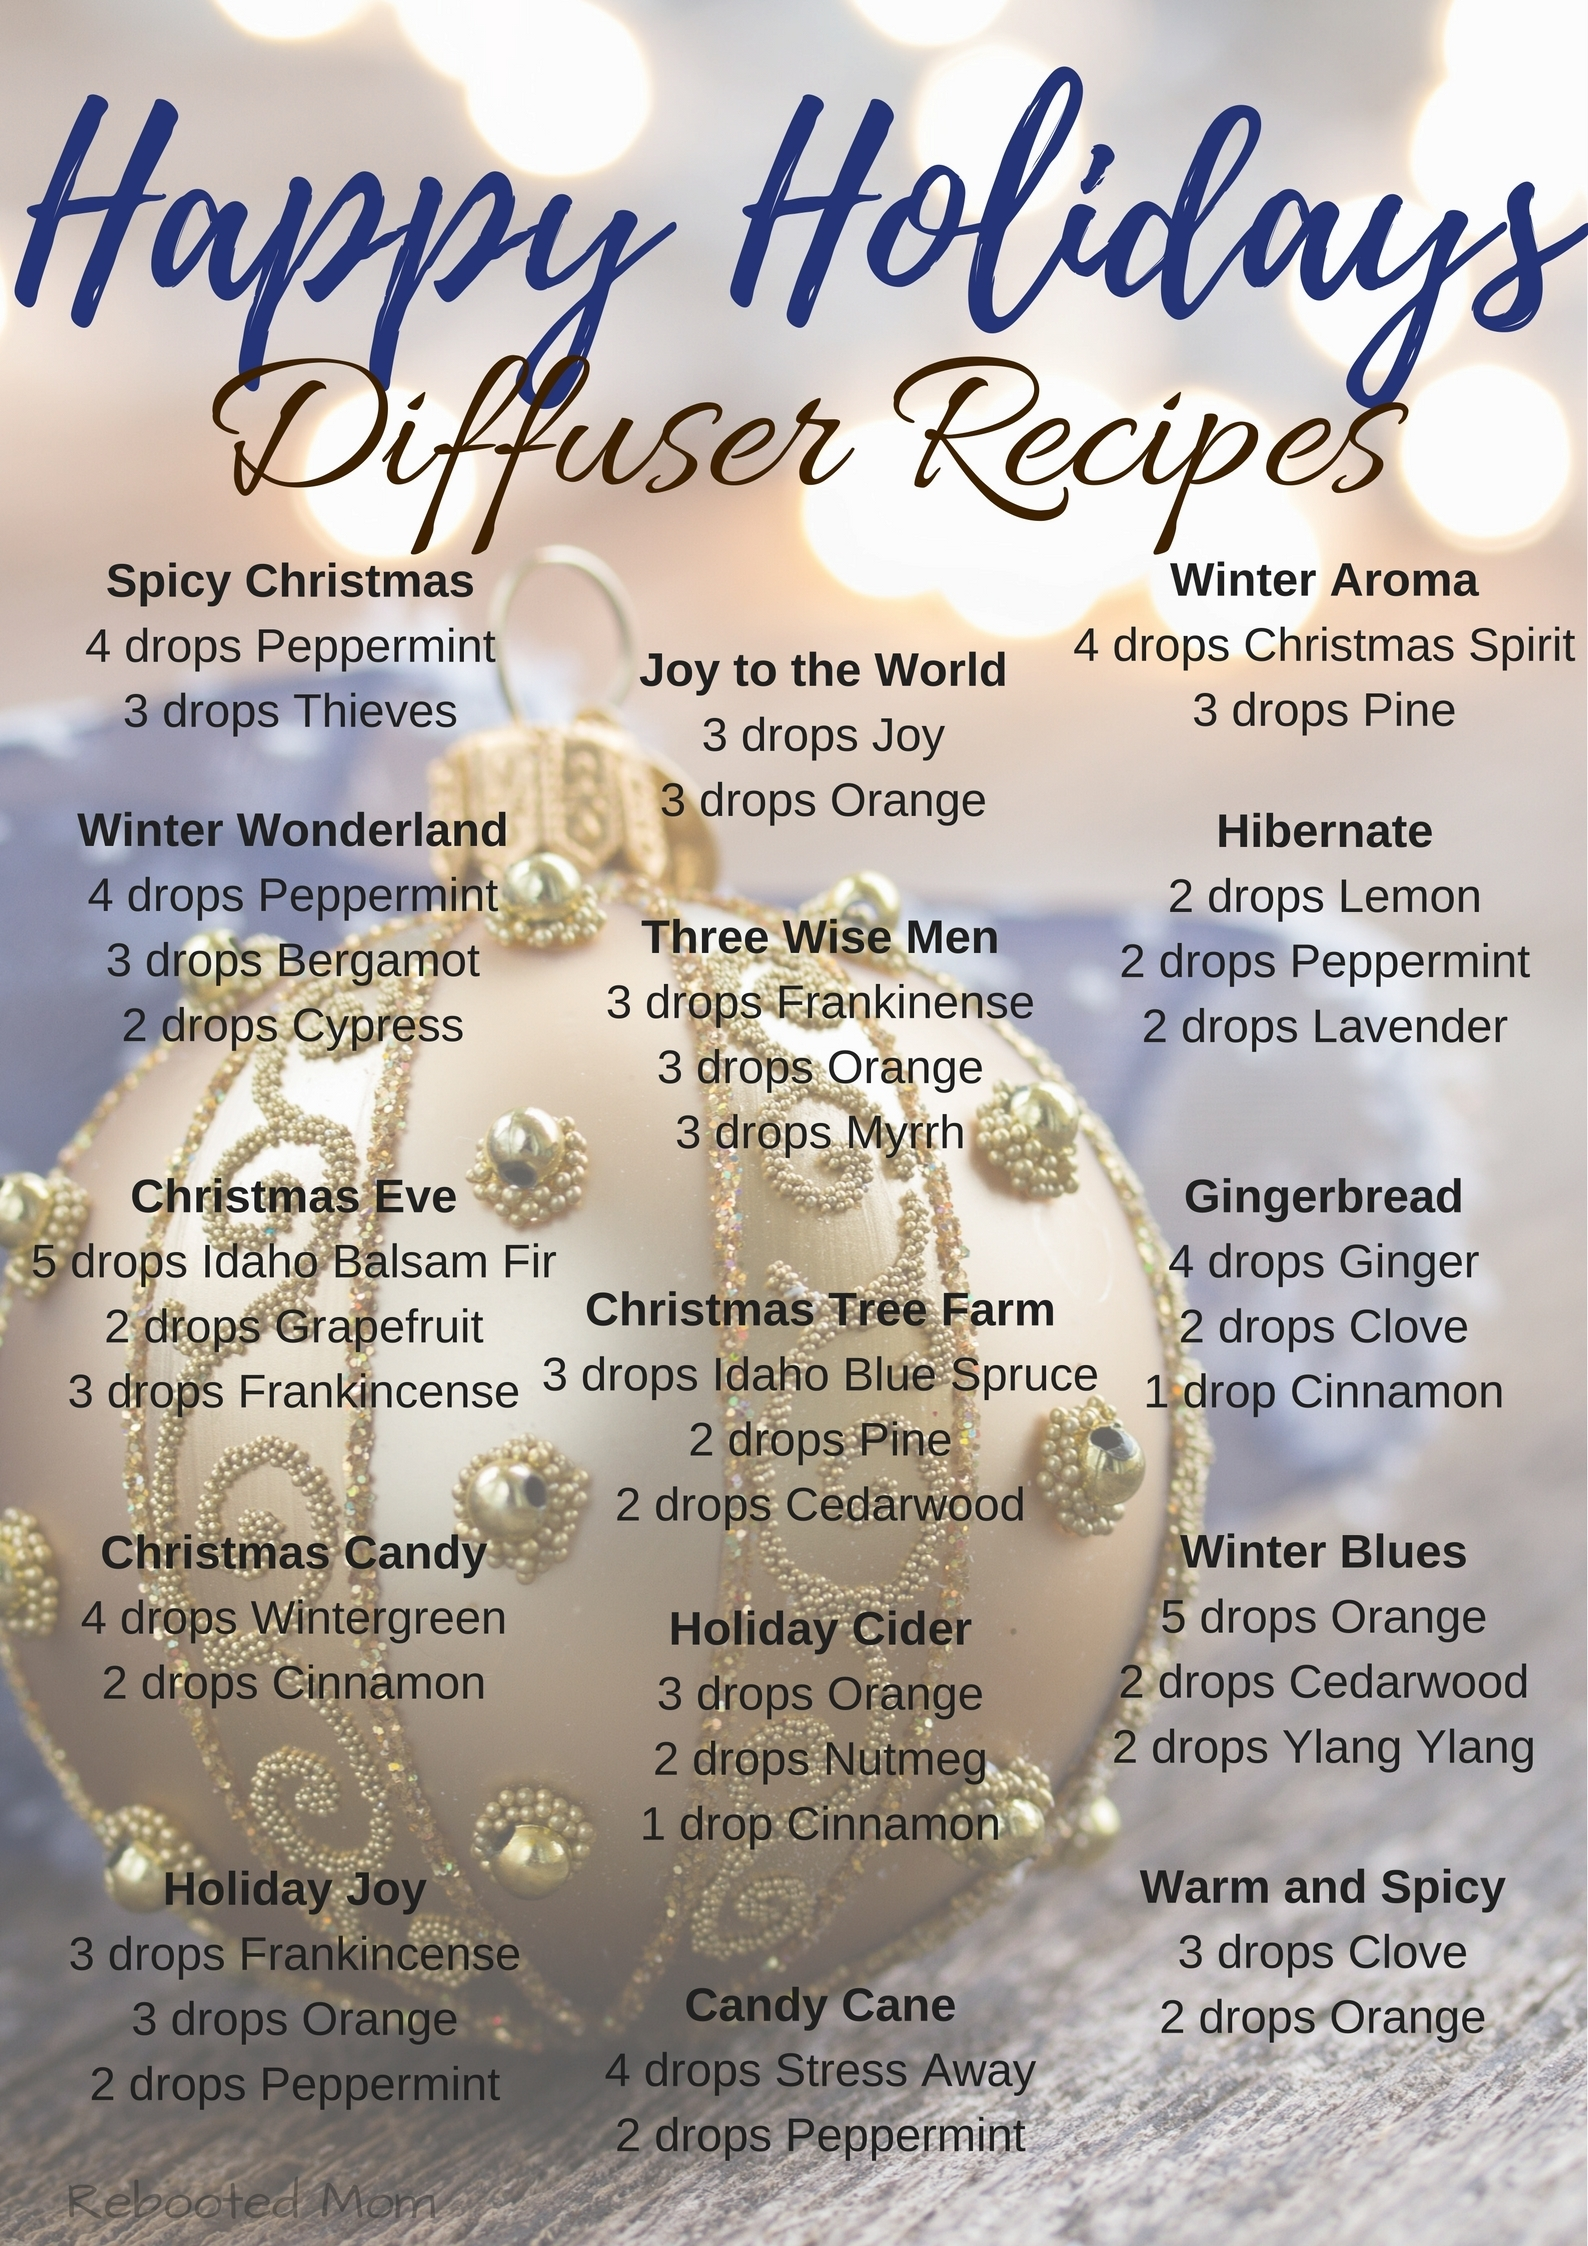 Ditch those candles and pull out that diffuser for some Happy Holidays Diffuser Recipes!